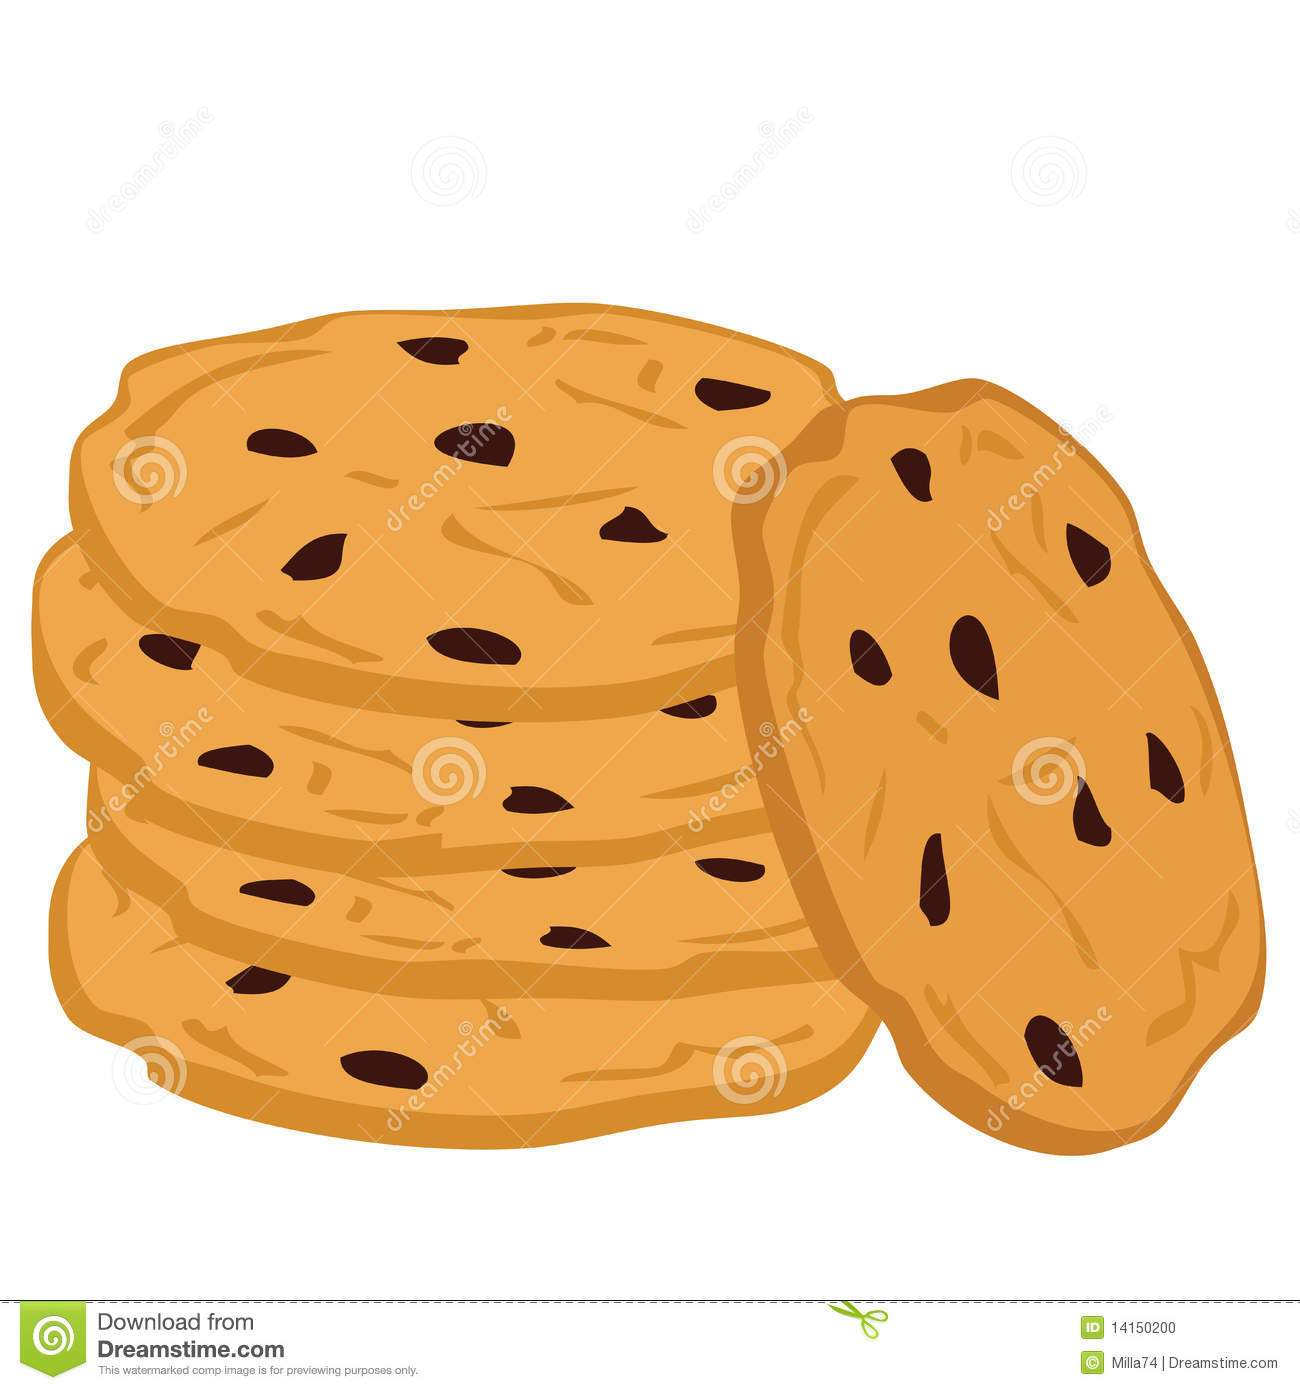 Stack of cookies clipart png free library Stack of cookies clipart 4 » Clipart Portal png free library